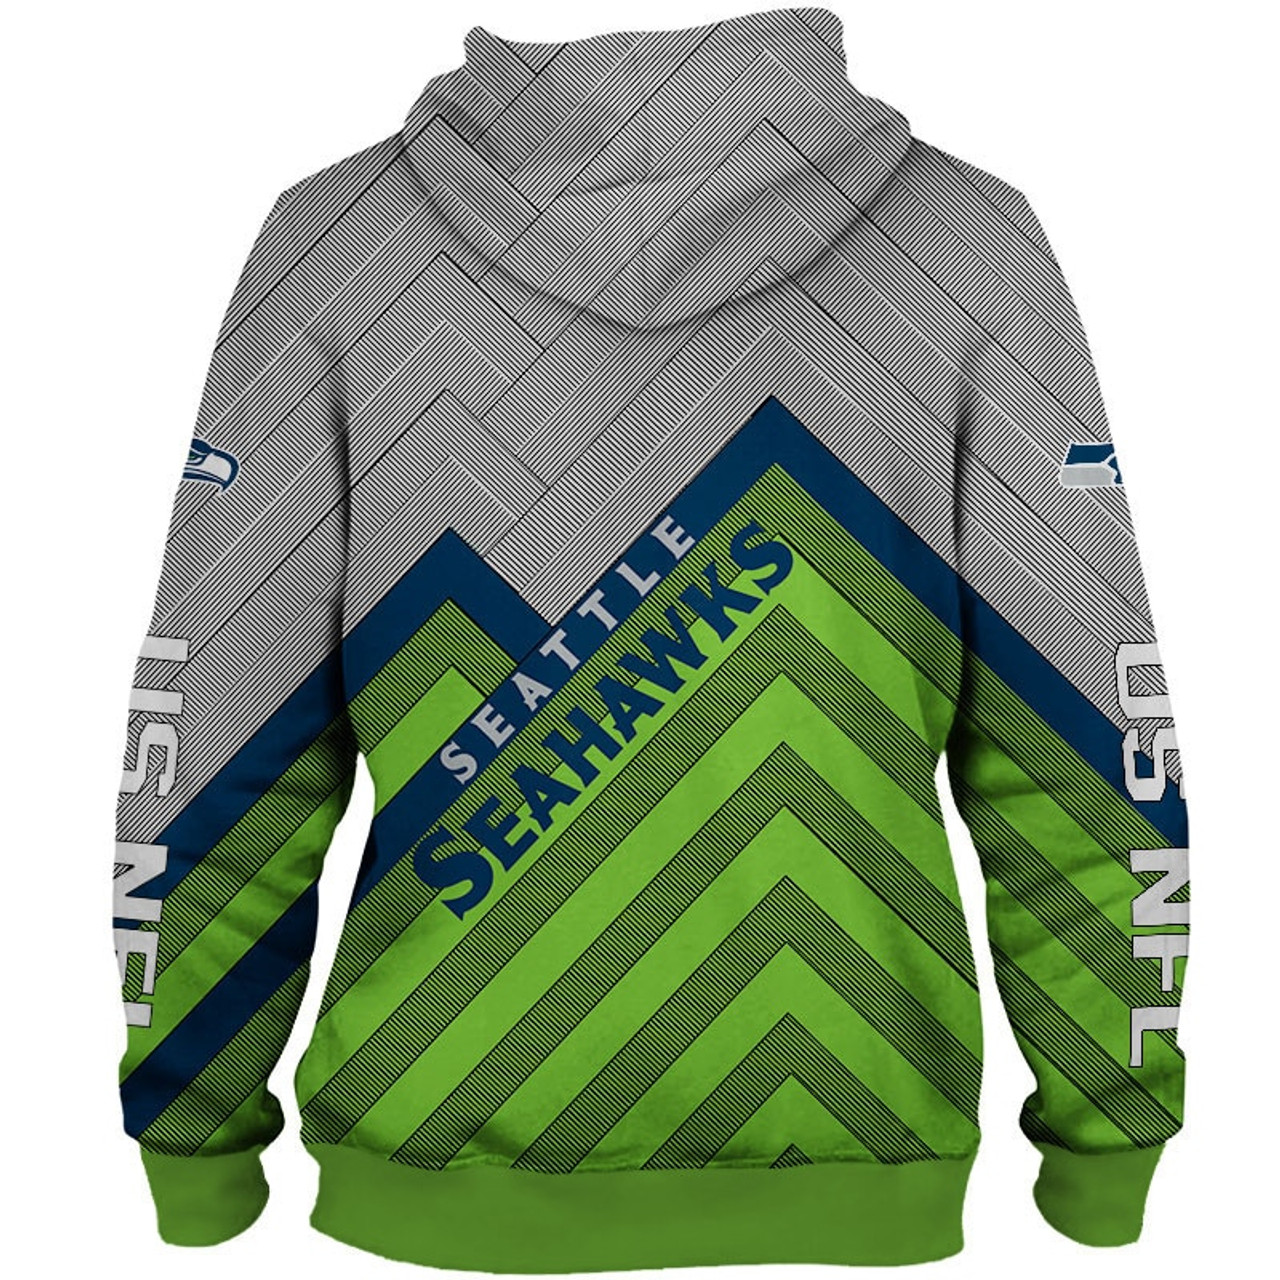 timeless design bc940 135aa **(OFFICIAL-N.F.L.SEATTLE-SEAHAWKS-PULLOVER-HOODIES/3D-CUSTOM-SEAHAWKS-LOGOS  & OFFICIAL-SEAHAWKS-TEAM-COLORS/NICE-3D-DETAILED-GRAPHIC-PRINTED-DOUBLE-S...